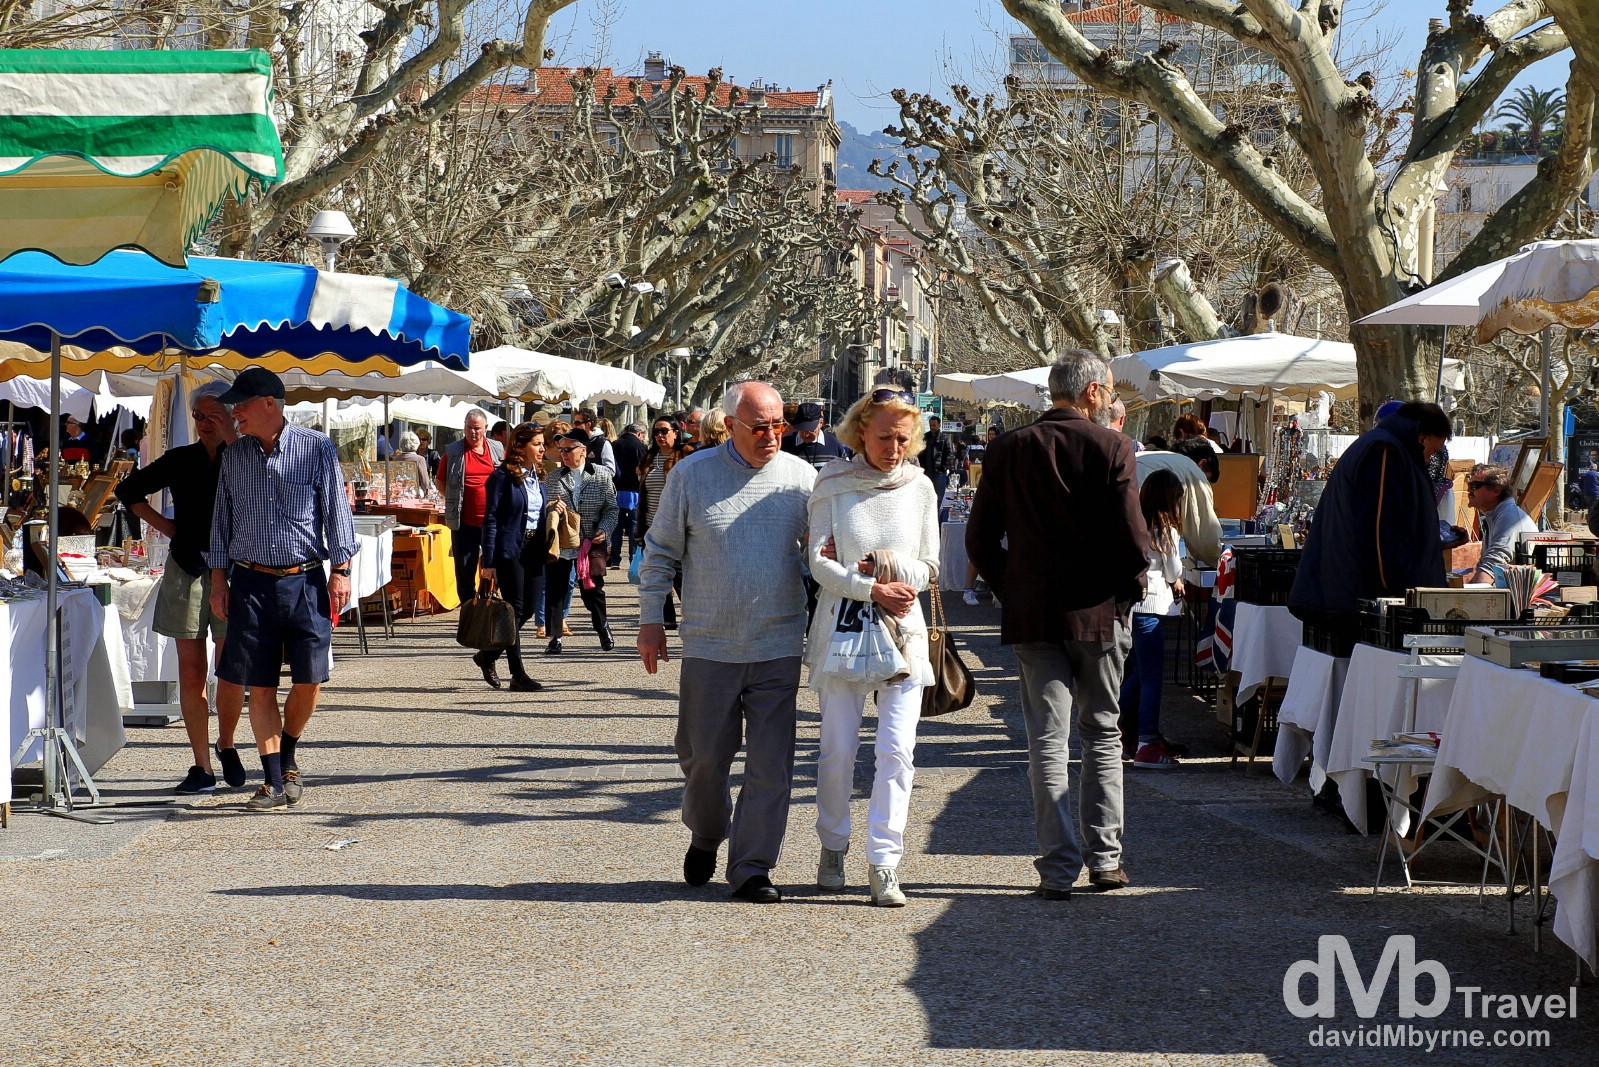 Arts & crafts market in Square Lord Brougham, Cannes, Côte d'Azur, France. March 15th, 2014.